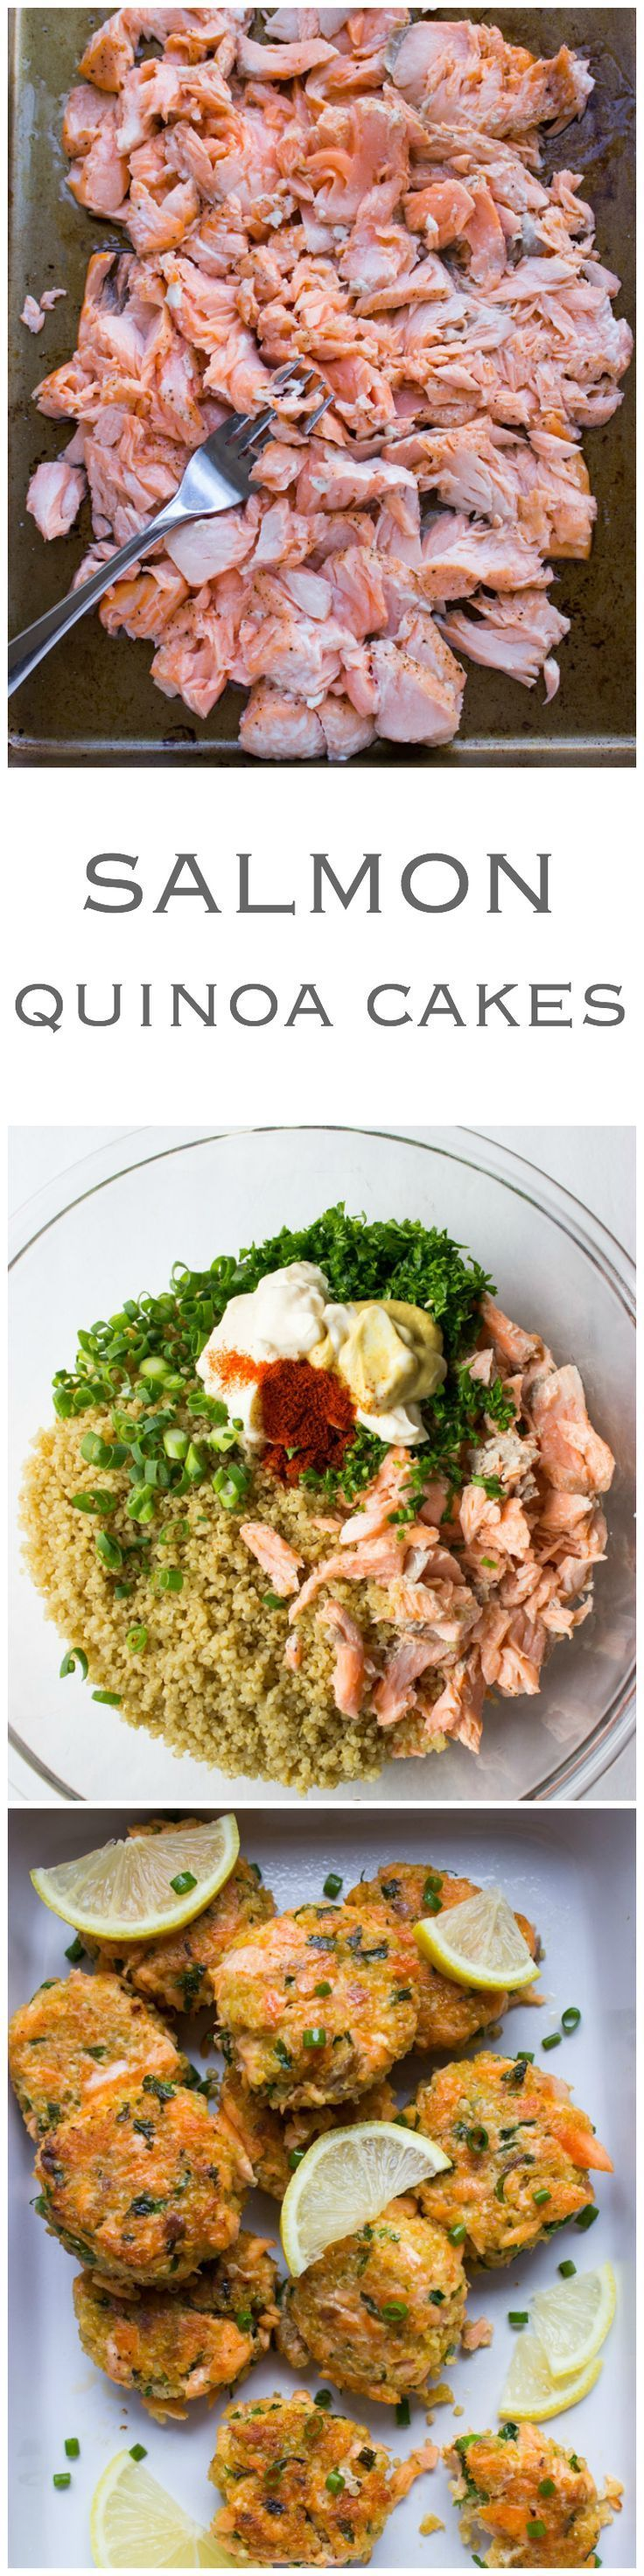 Salmon Quinoa Cakes - transform leftover salmon into these delicious super moist and tender cakes. Made with superfood quinoa and healthy salmon